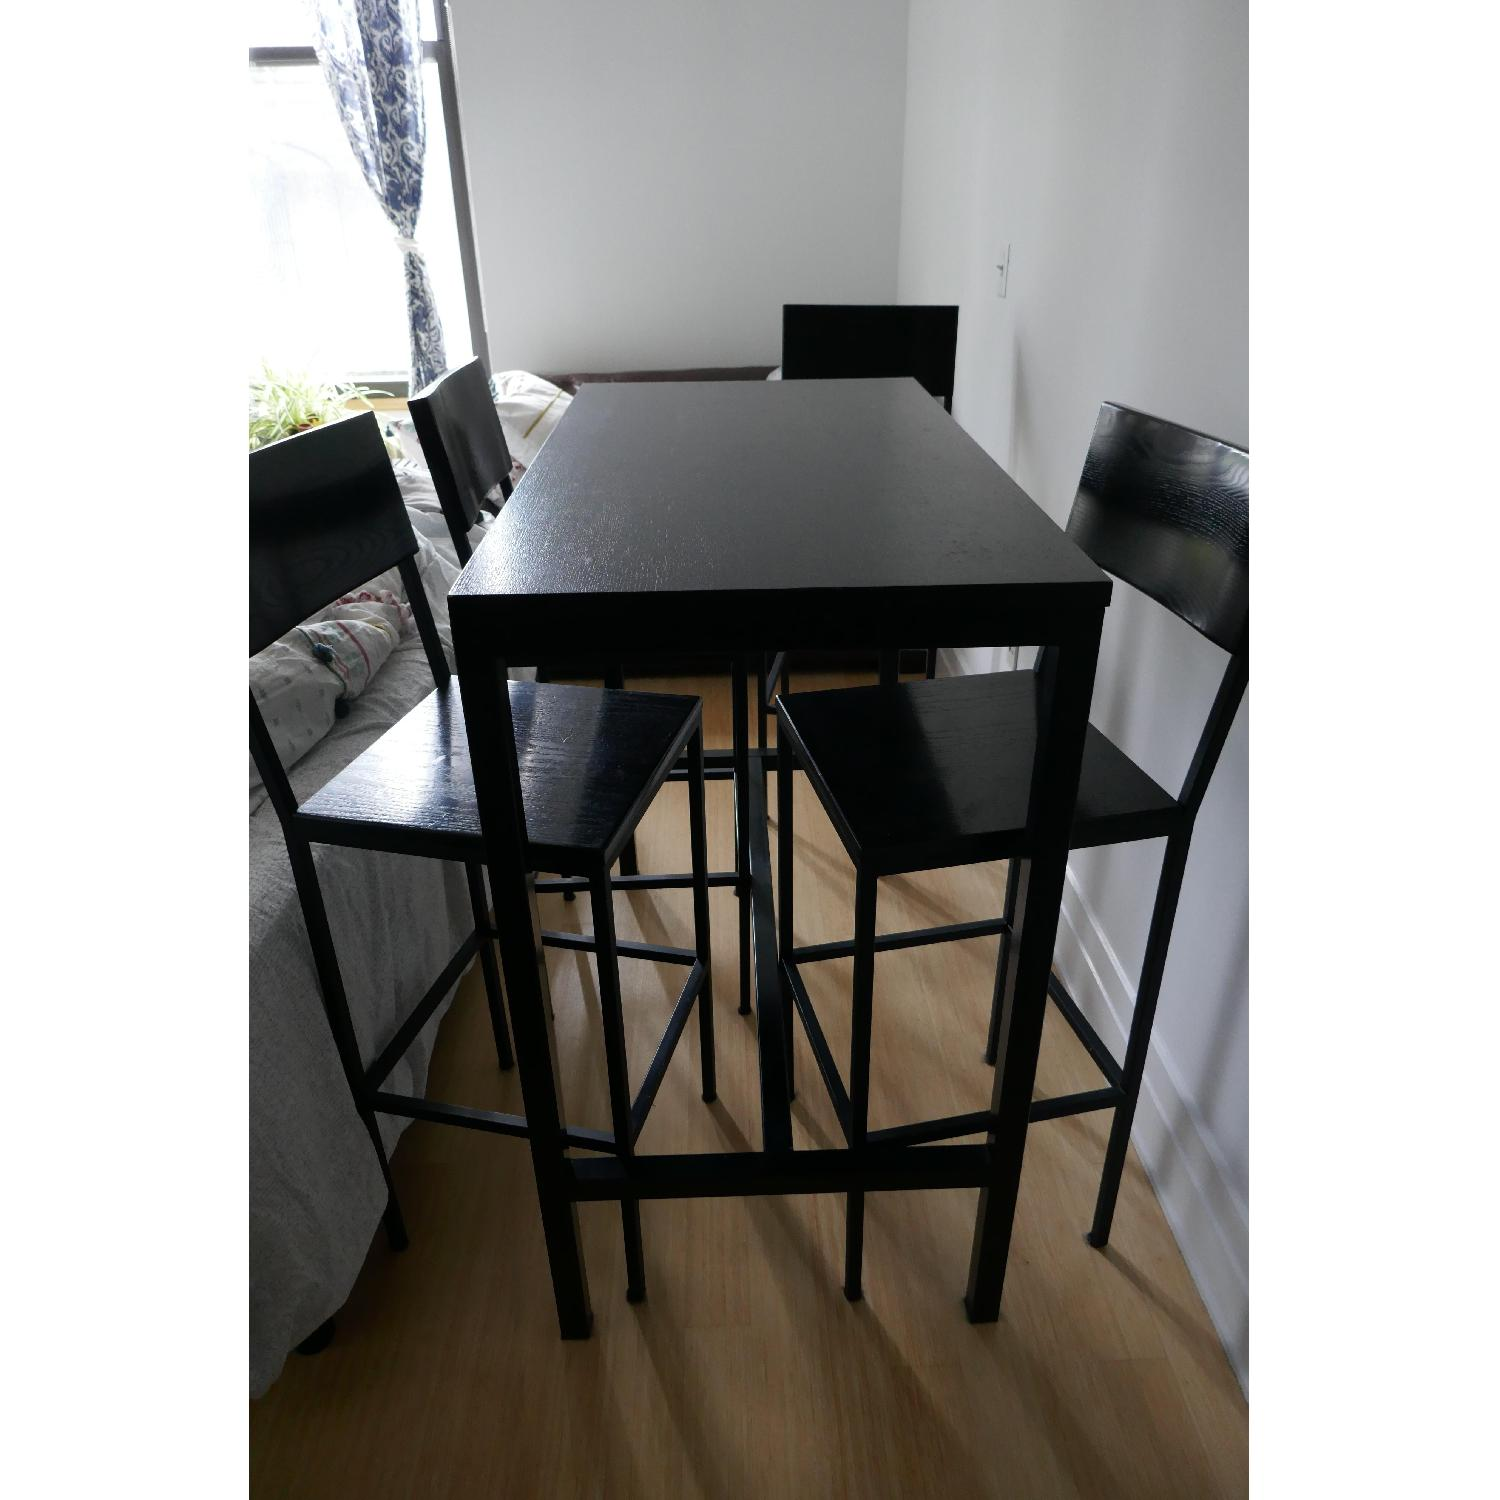 Black Metal Bar Height Table w/ 4 Chairs-0